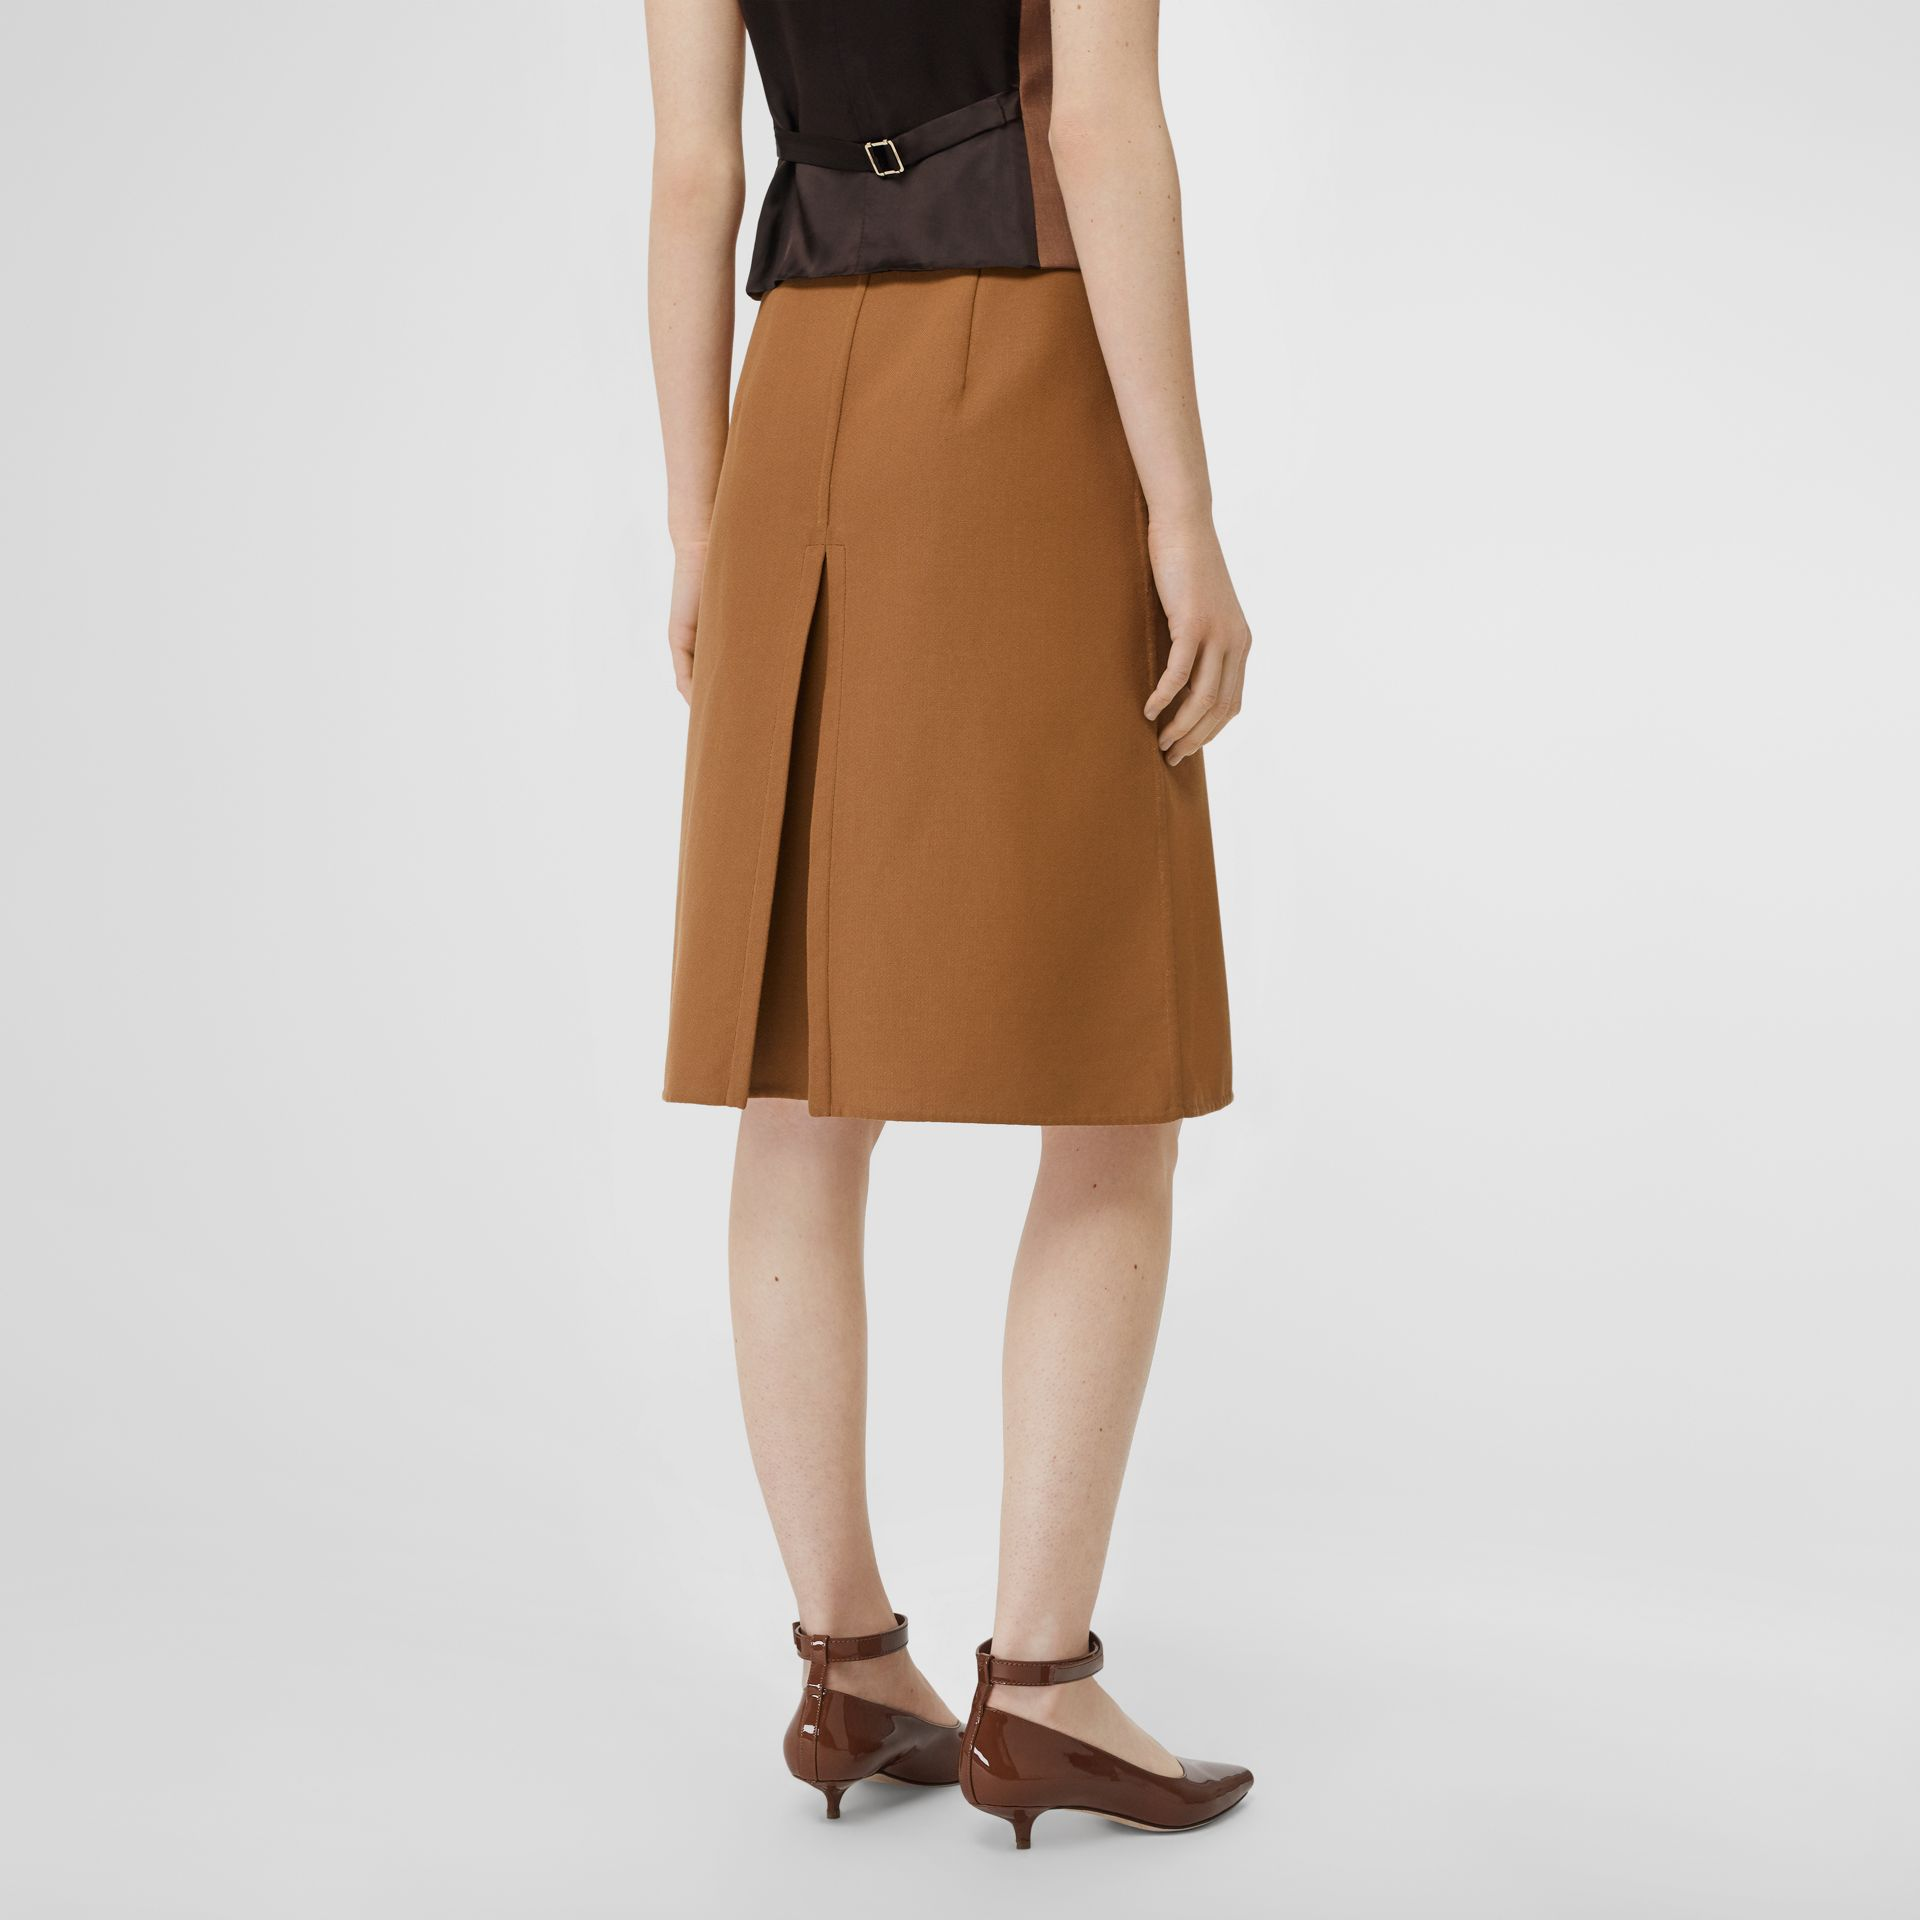 Box Pleat Detail Cotton A-line Skirt in Bronze - Women | Burberry Singapore - gallery image 2